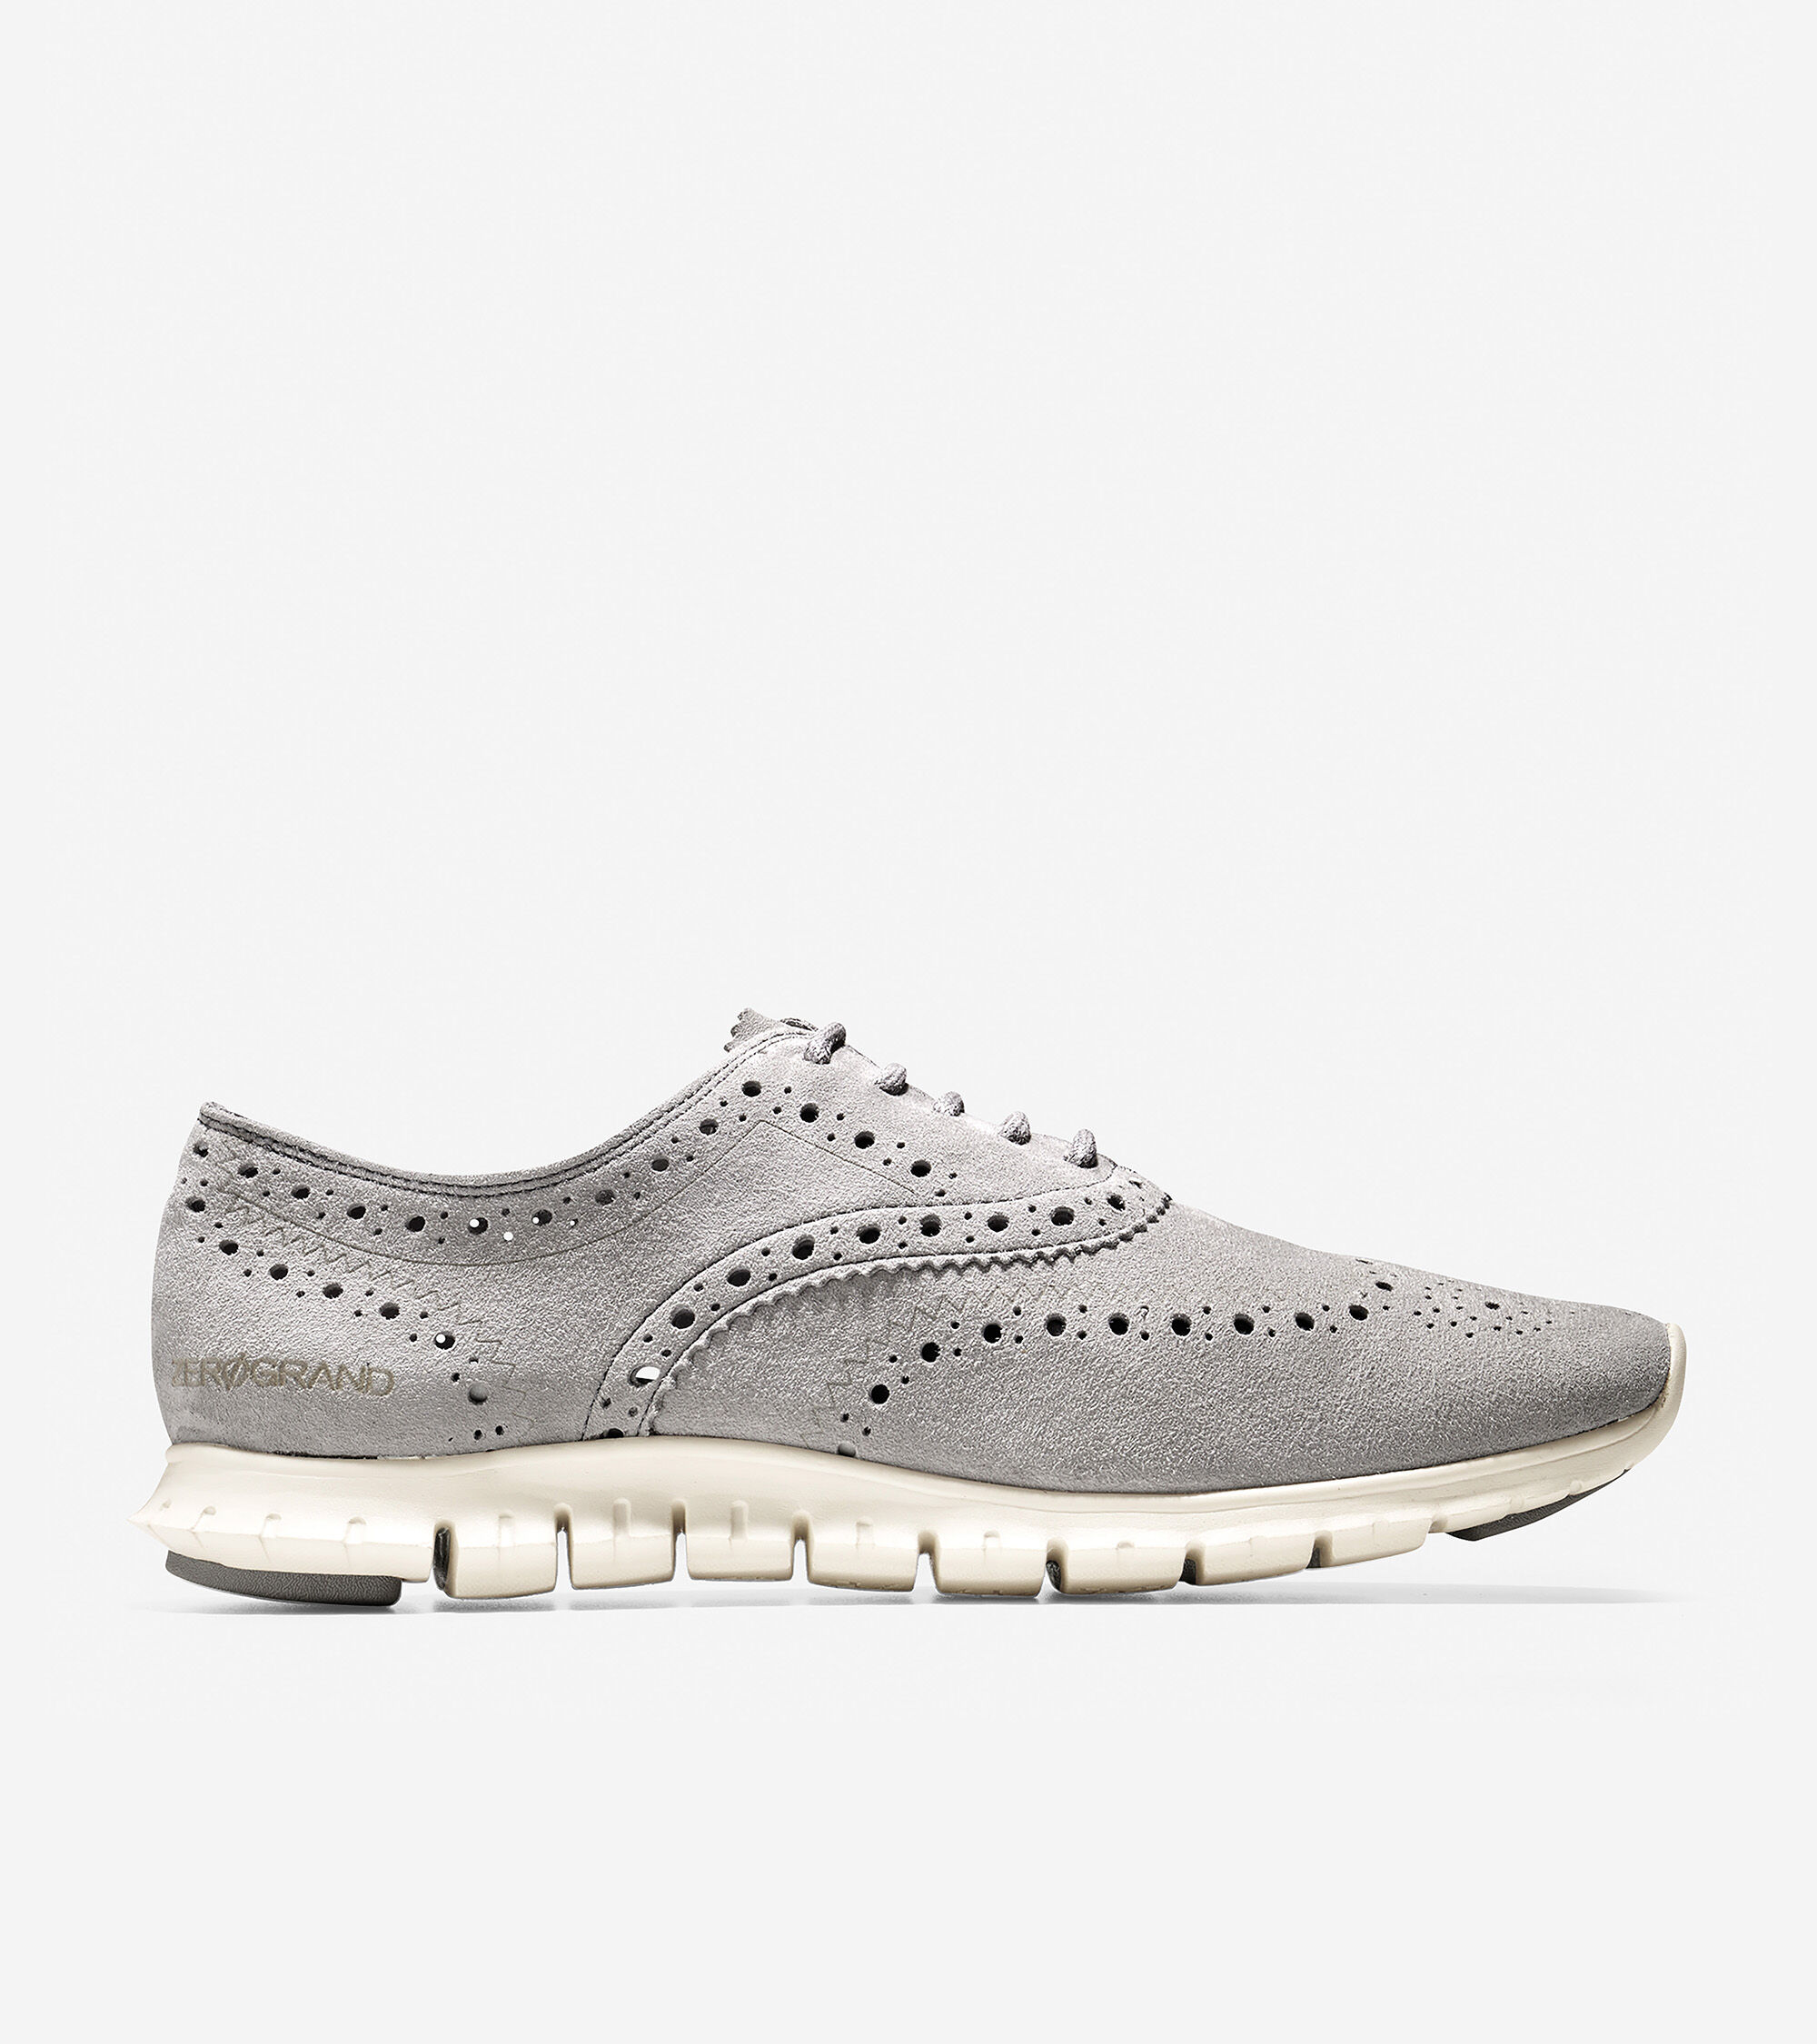 Womens Zerogrand Wing Oxfords In Ironstone Cole Haan Cut Engineer Shoes Safety Boots Iron Suede Leather Black Zergrand Wingtip Oxford